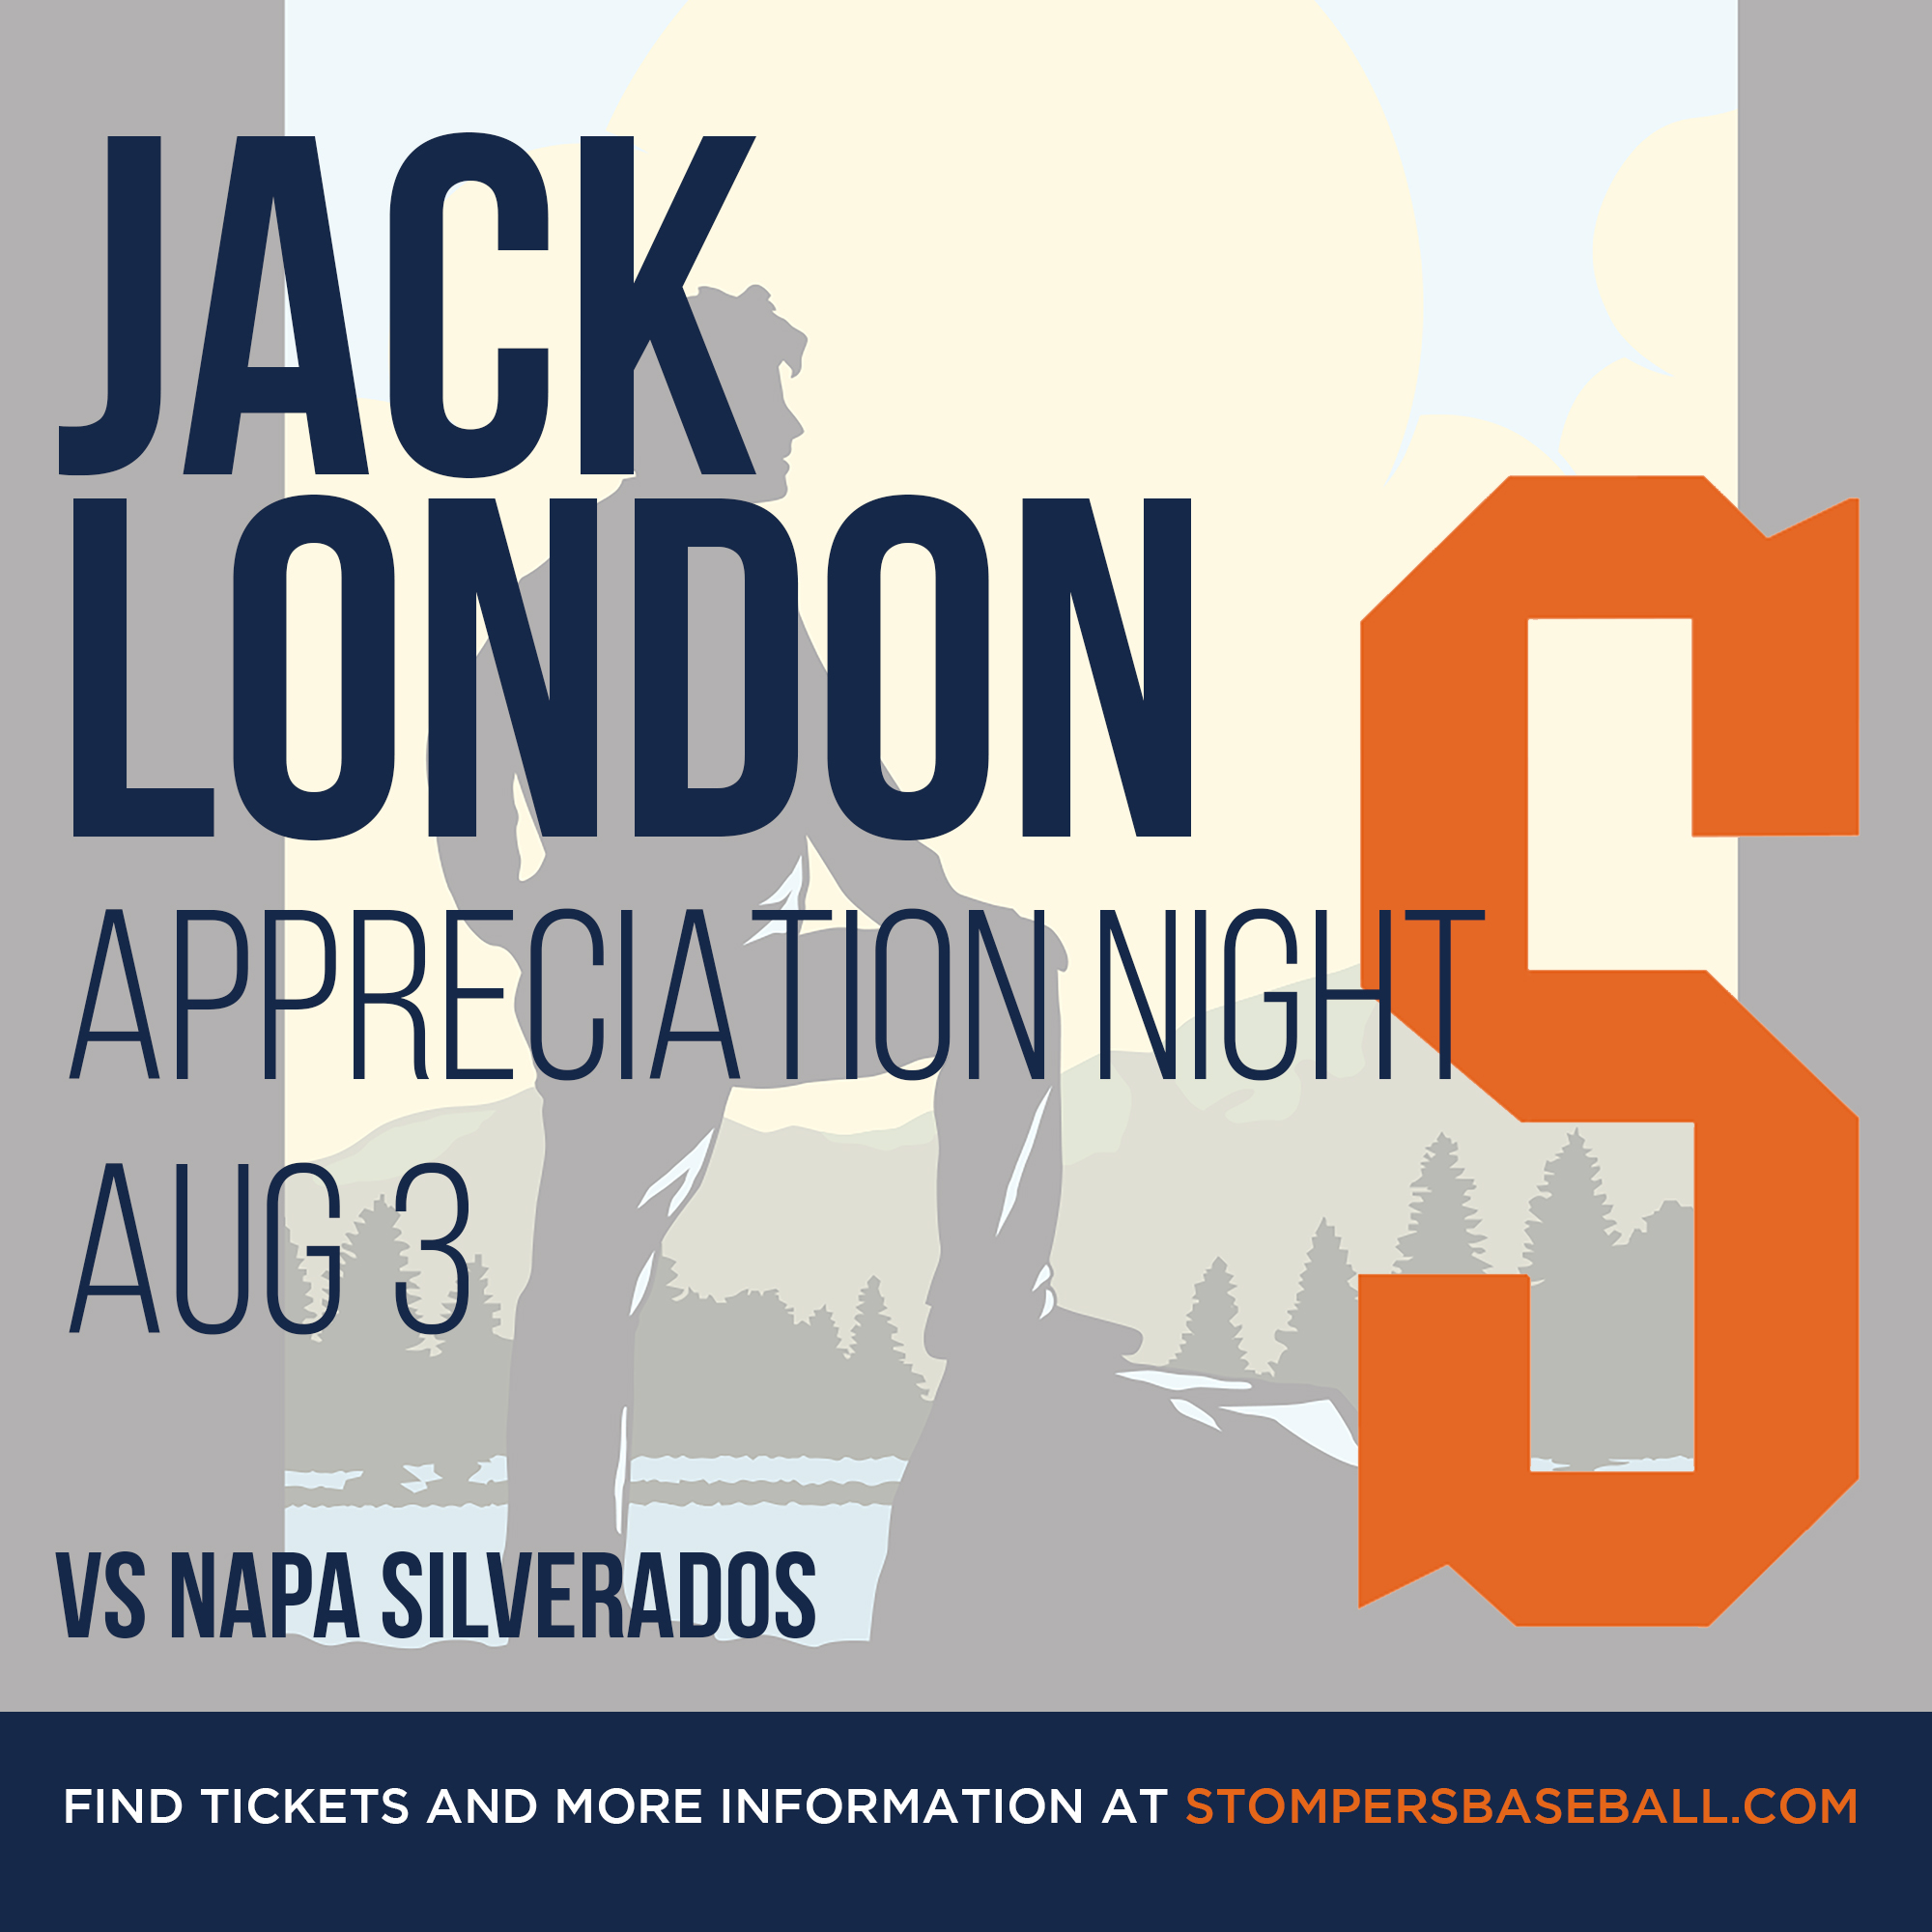 Aug 3: Jack London Night - Watch the Sonoma Stompers take on the Napa Silverados and honor Jack London who is such a big part of our community's history!